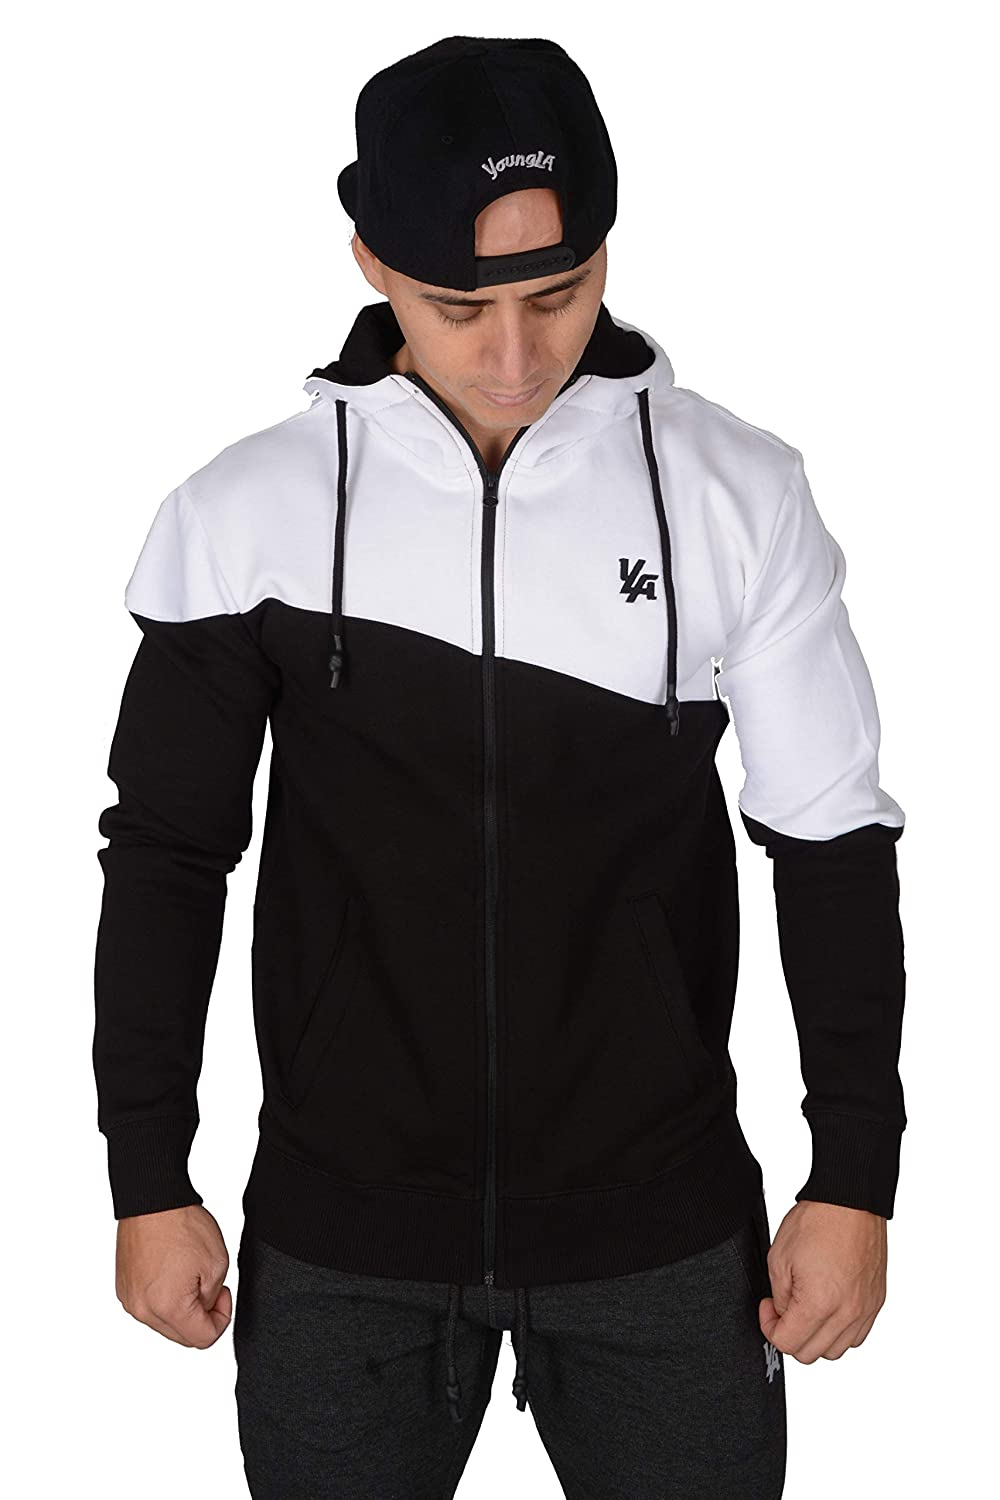 YoungLA Gym Hoodie for Men Soft Athletic Training Workout Hoodies with Zipper 516